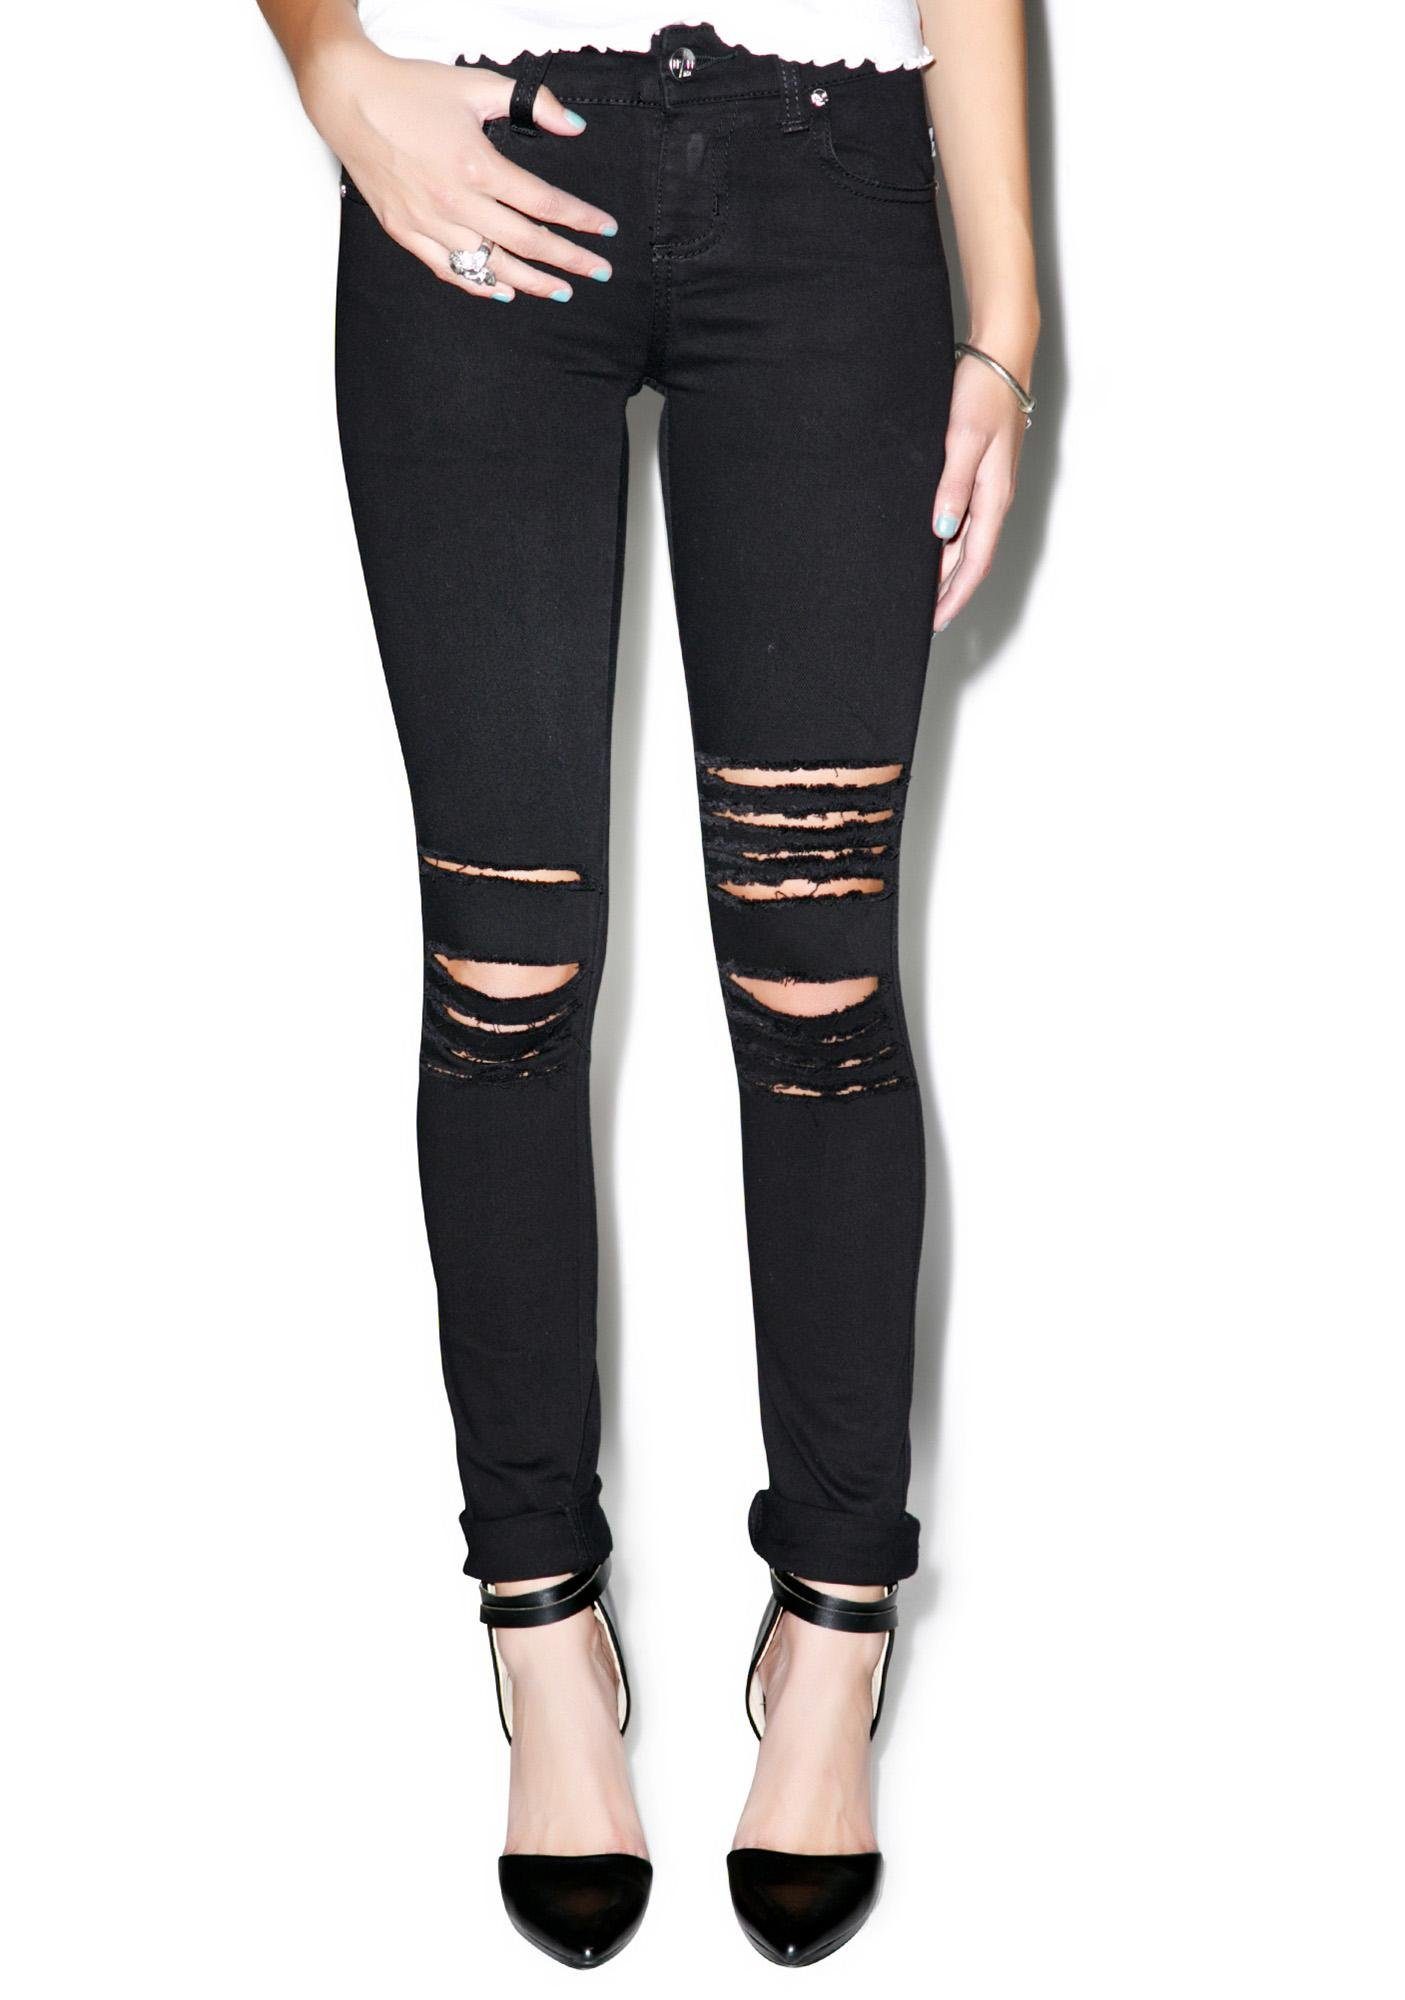 Tripp NYC Rough N' Rowdy Knee Slit Jeans